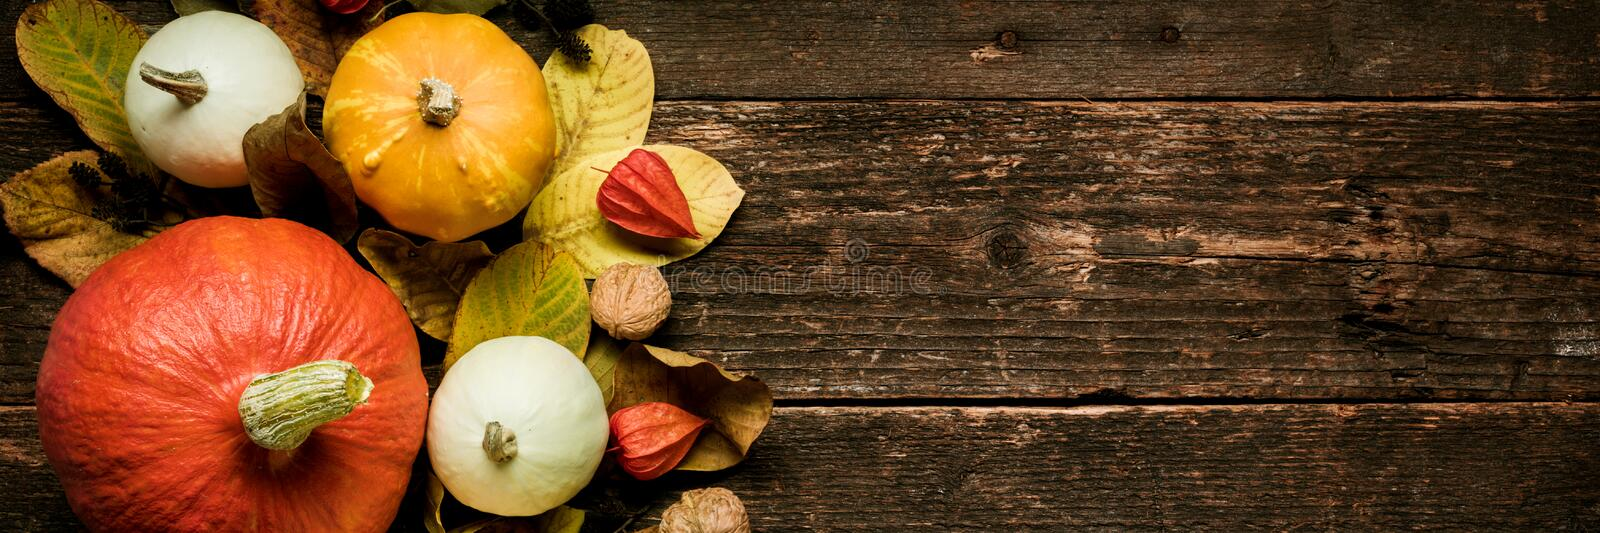 Autumn Harvest and Holiday still life. Happy Thanksgiving Banner. Selection of various pumpkins on dark wooden background. Autumn vegetables and seasonal royalty free stock photography